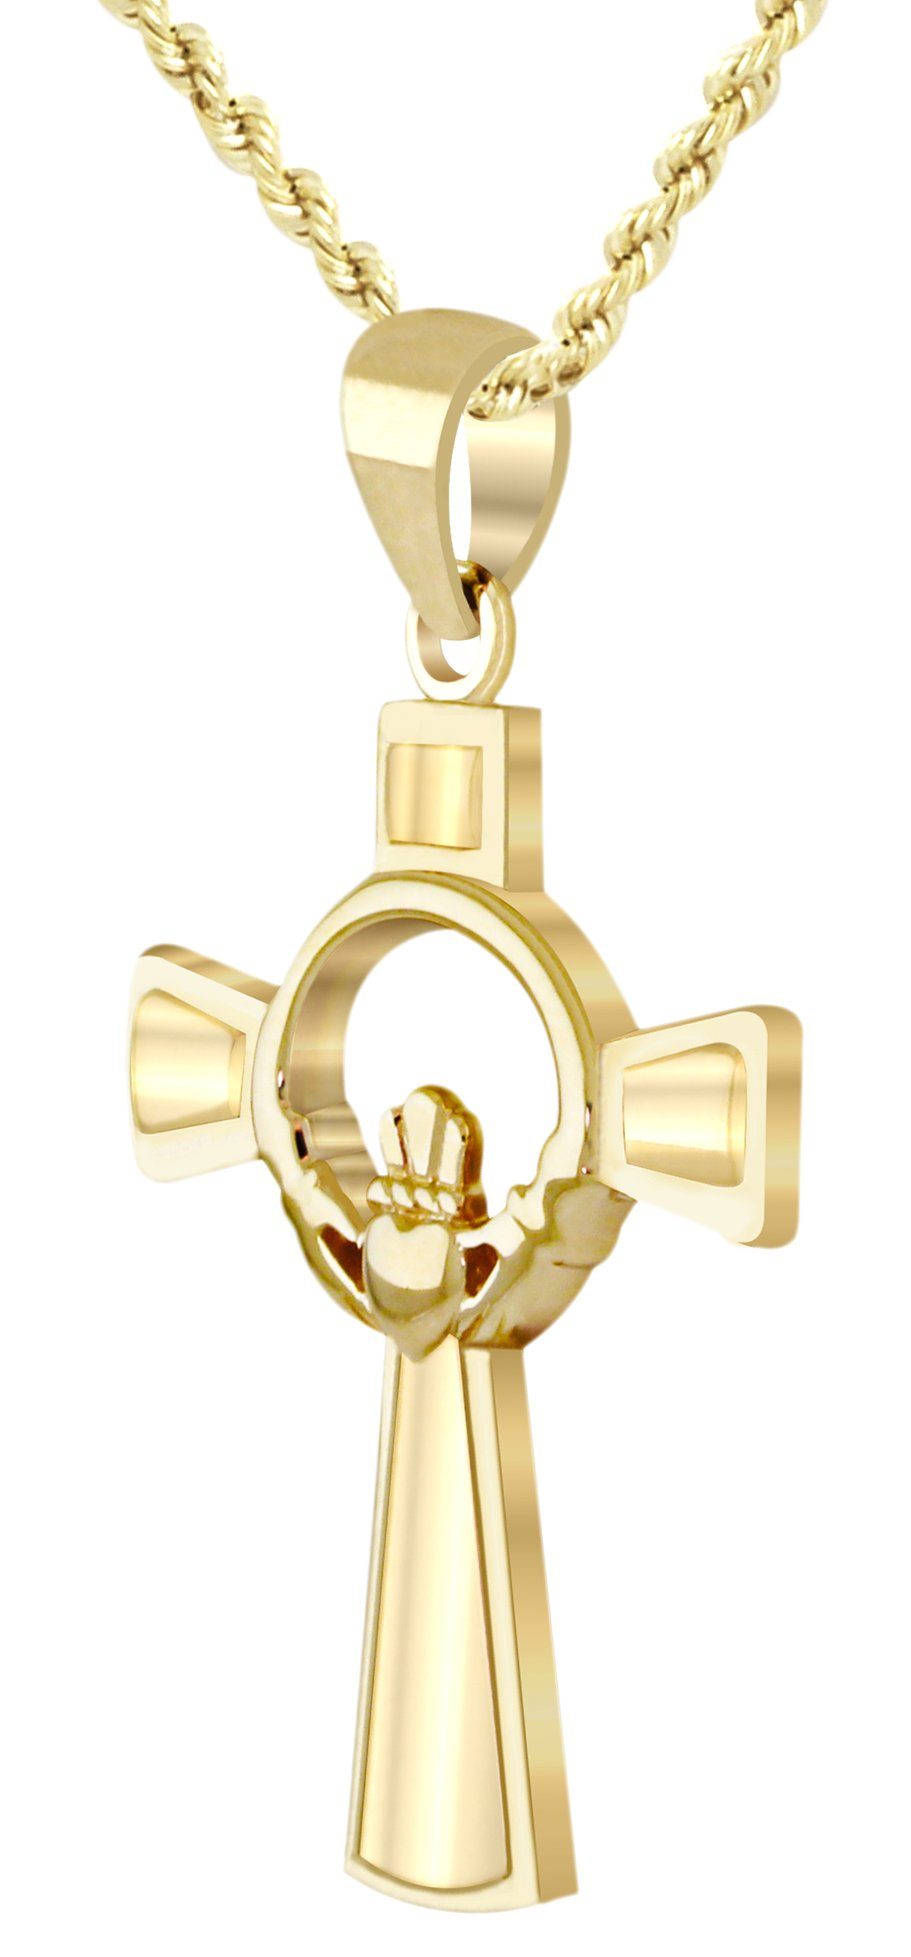 Men's 1.125in Solid 10k Yellow Gold Irish Celtic Claddagh Cross Pendant 2.0mm Rope Necklace, 18in